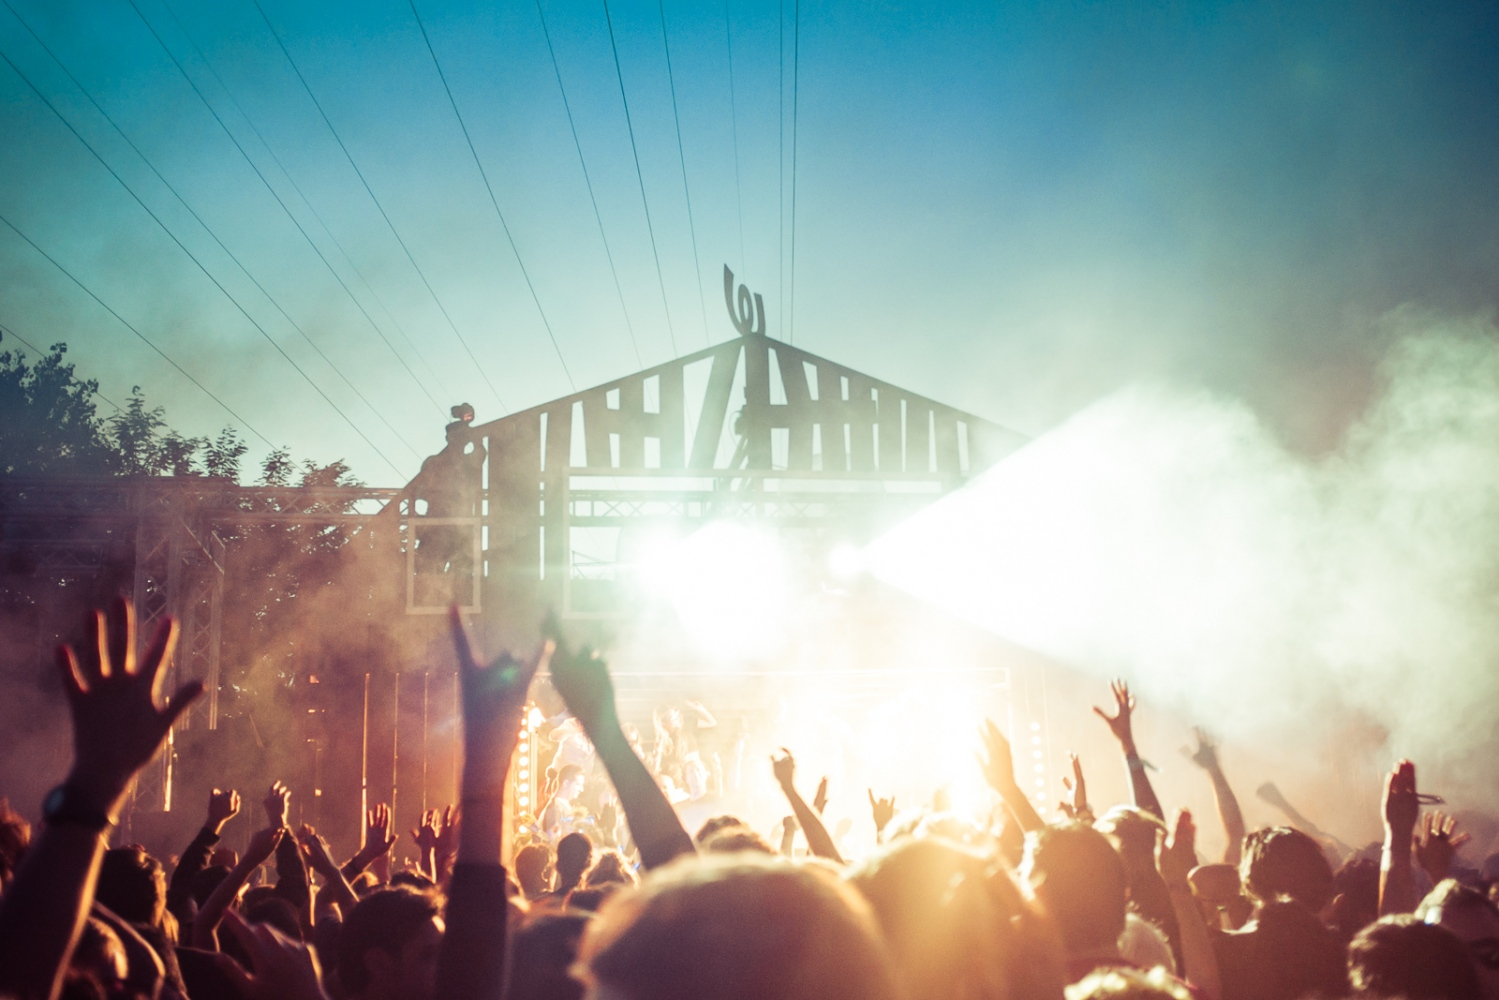 Berlin, GERMANY, July 26, 2015: Crowds celebrate electronic dance music and sunshine at Watergate Open Air. Rummelsburg is one of the most popular outdoor event venues during summertime in Berlin.